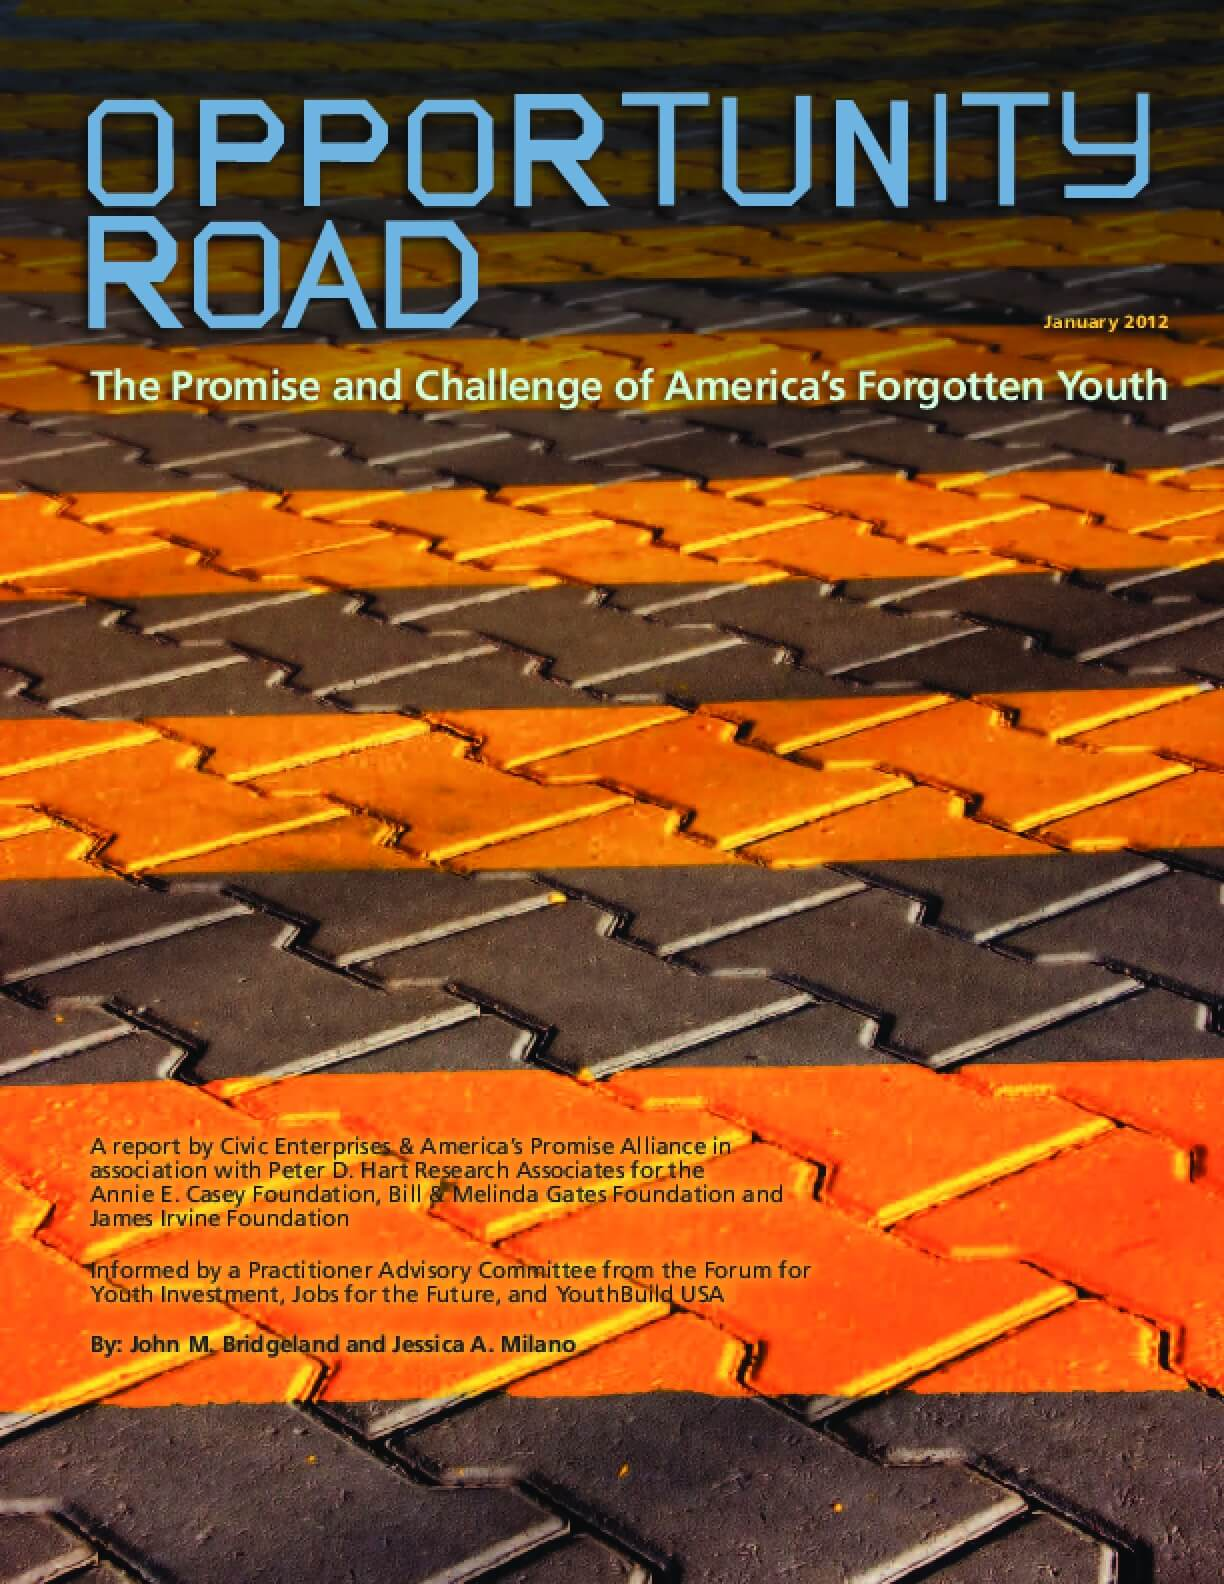 Opportunity Road: The Promise and Challenge of America's Forgotten Youth